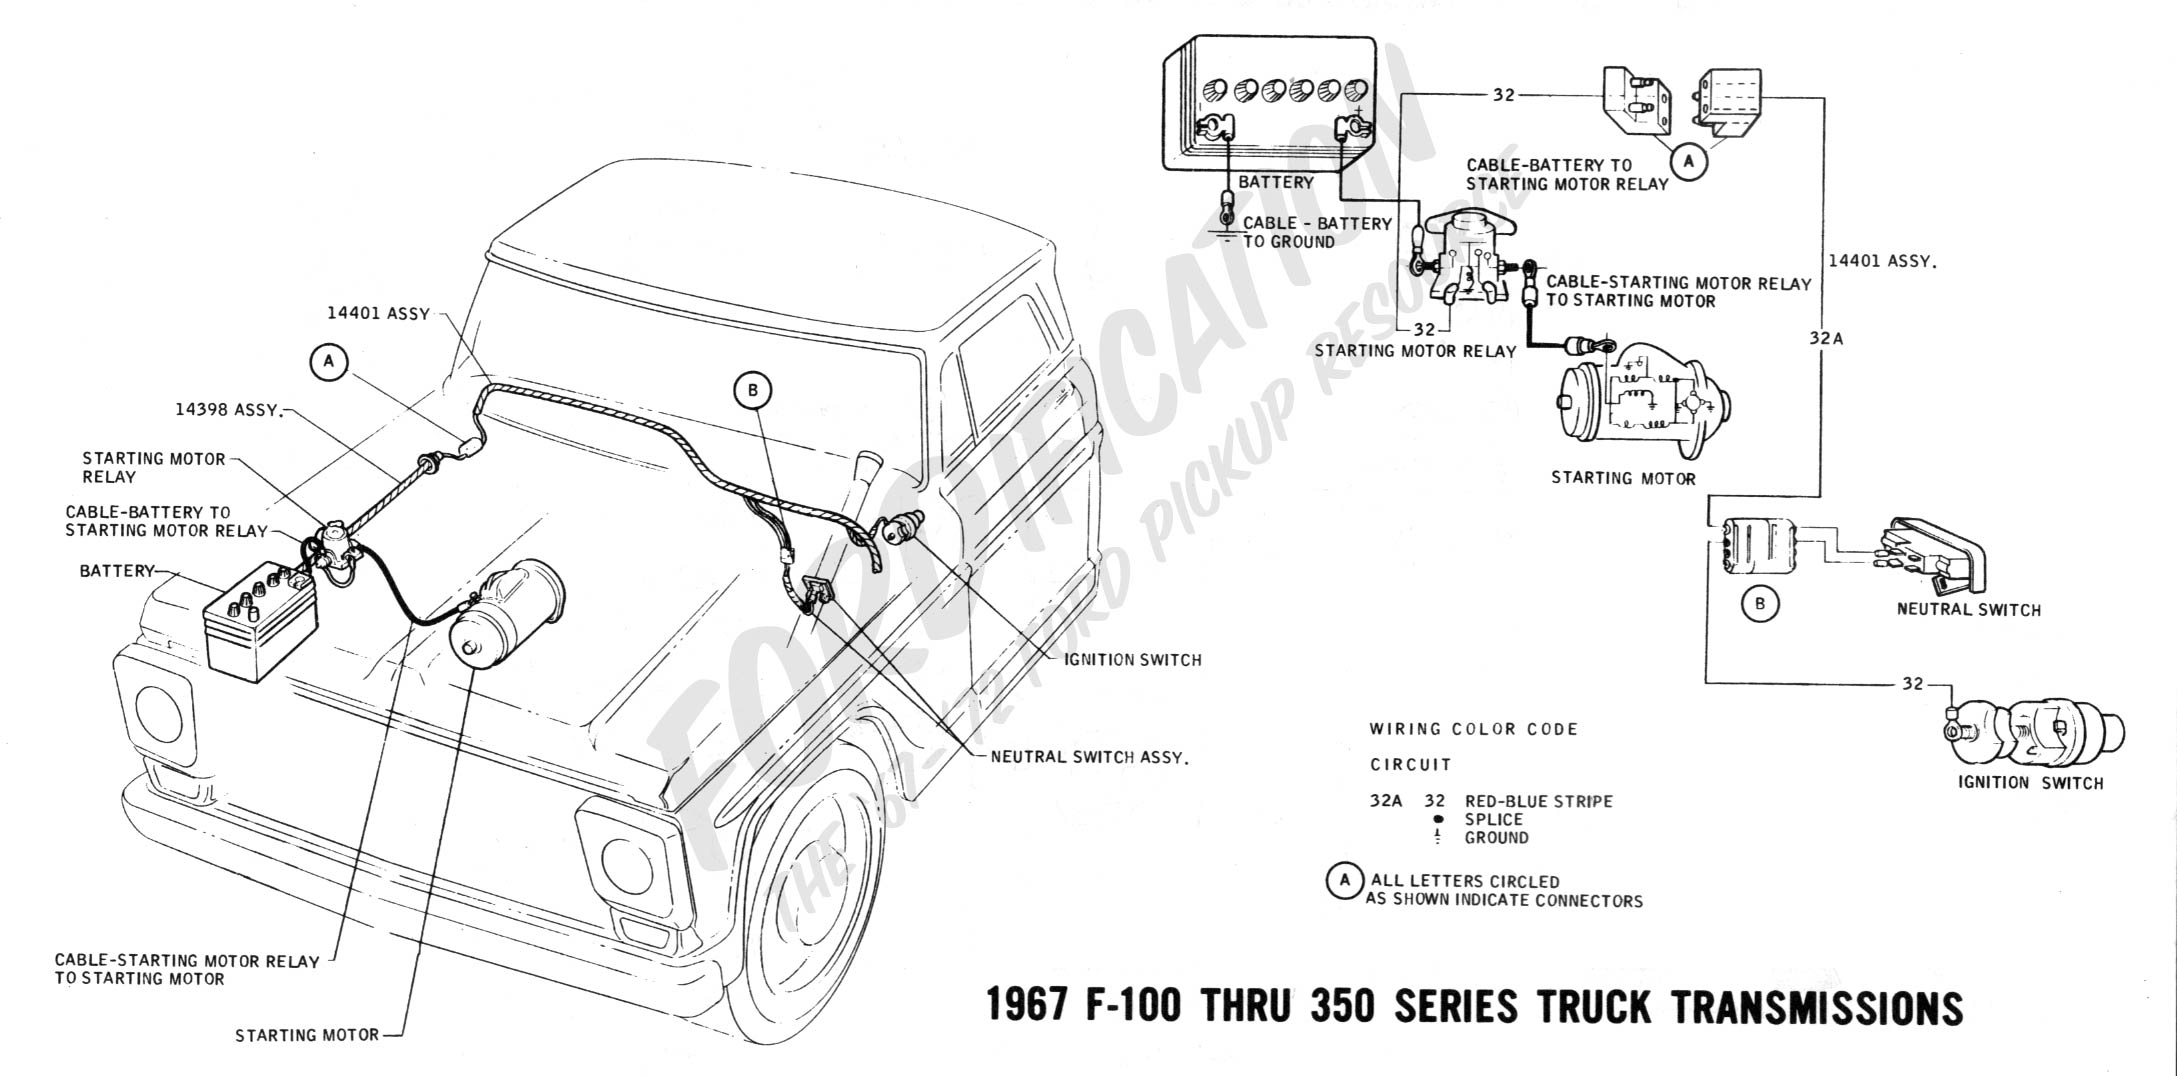 ford truck technical drawings and schematics section h 2003 ford f350 relay diagram 2002 ford f350 relay diagram